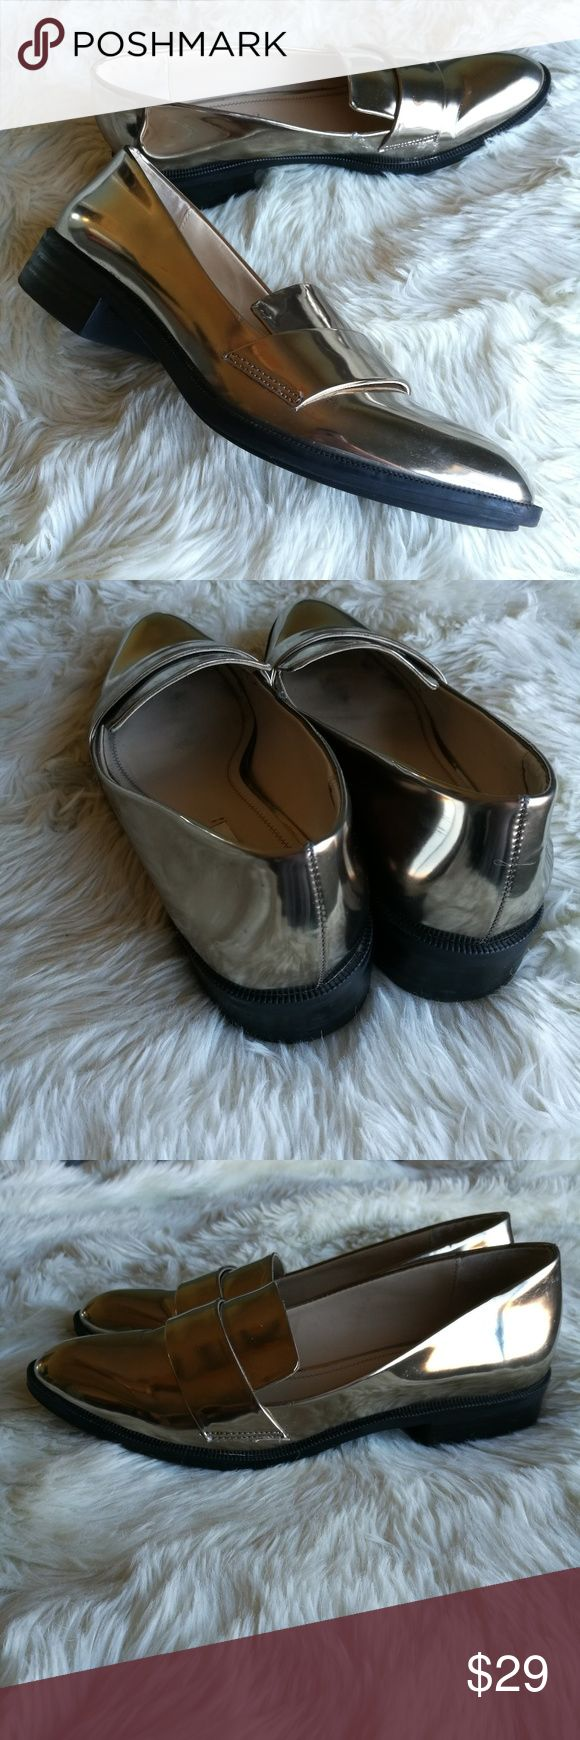 ZARA Loafer Flats Slide On Mule Shoes Size Zara metallic loafer slide on #mules. Metallic bronze and reflective. Black bottom soles. Small block heel. There are some scuffs and scratches as photographed. Size 38 Zara Shoes Flats & Loafers